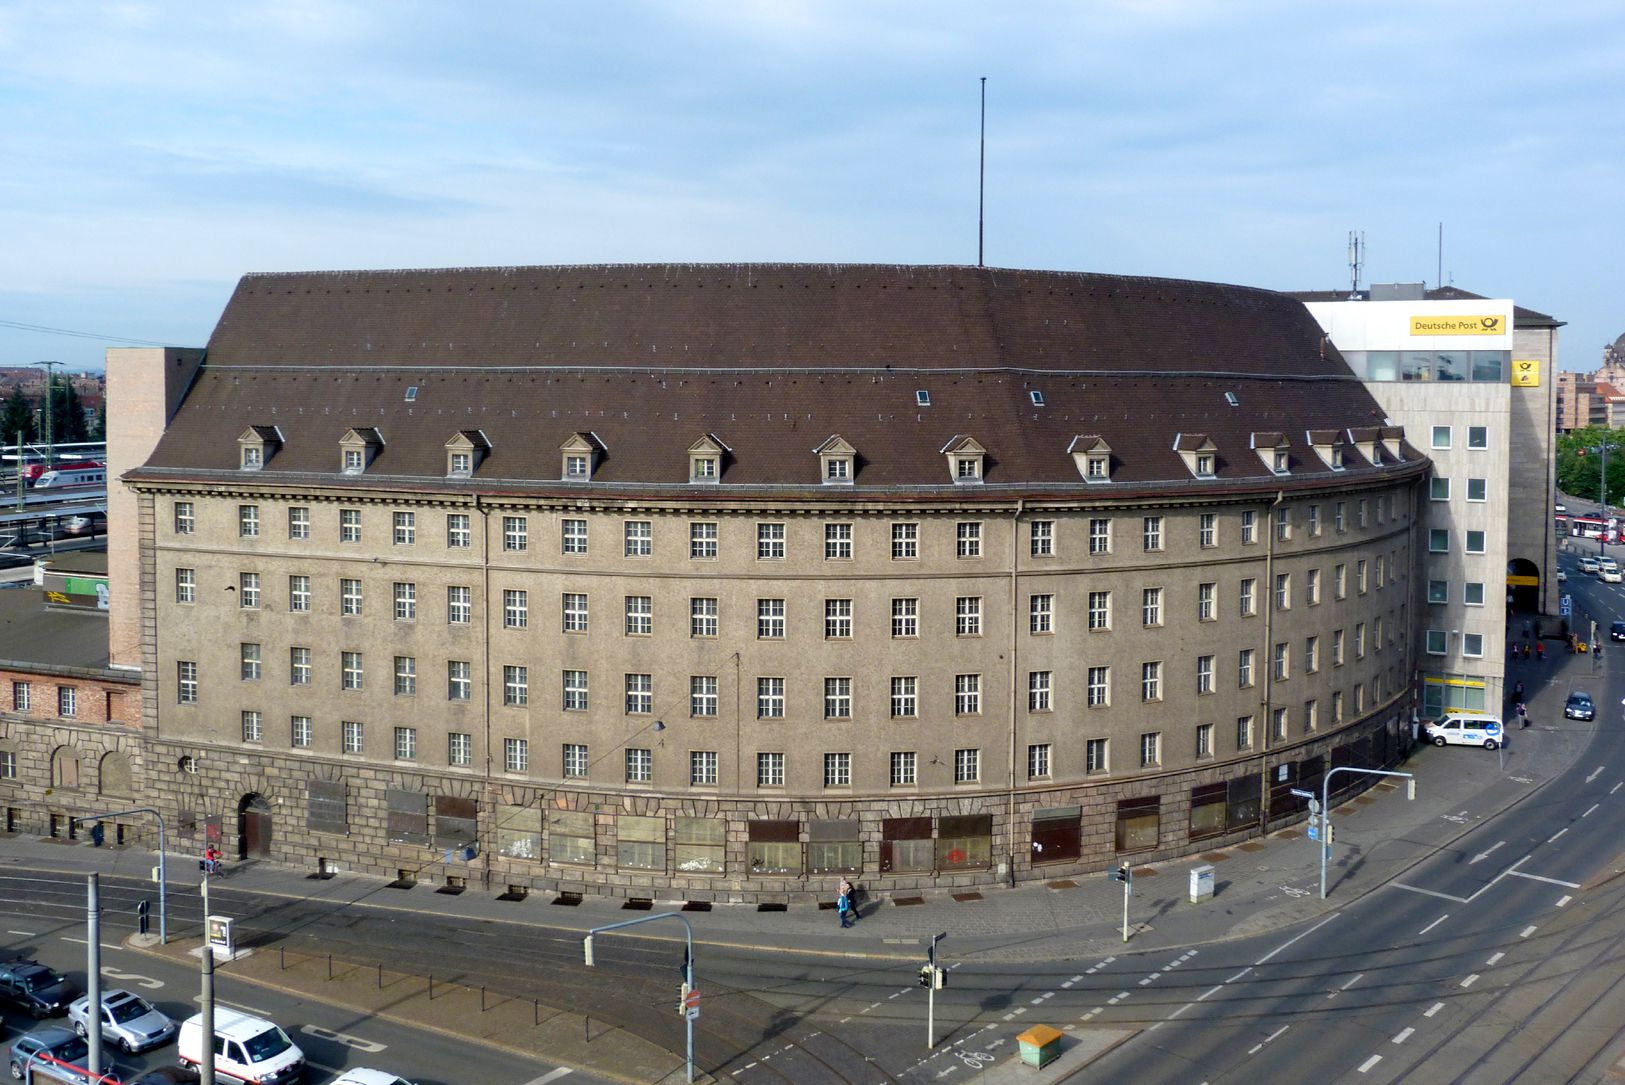 Former main post office, hemicycle General view, frontal